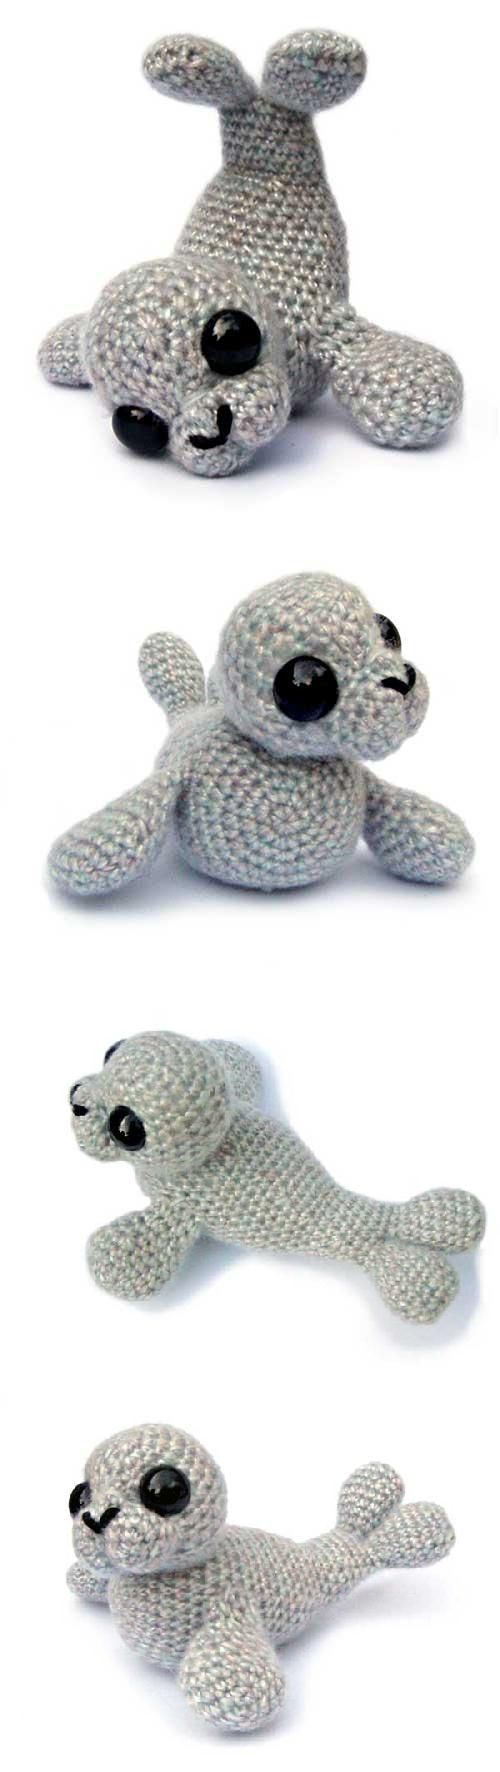 503 best juguetes crochet images on Pinterest | Crochet animals ...